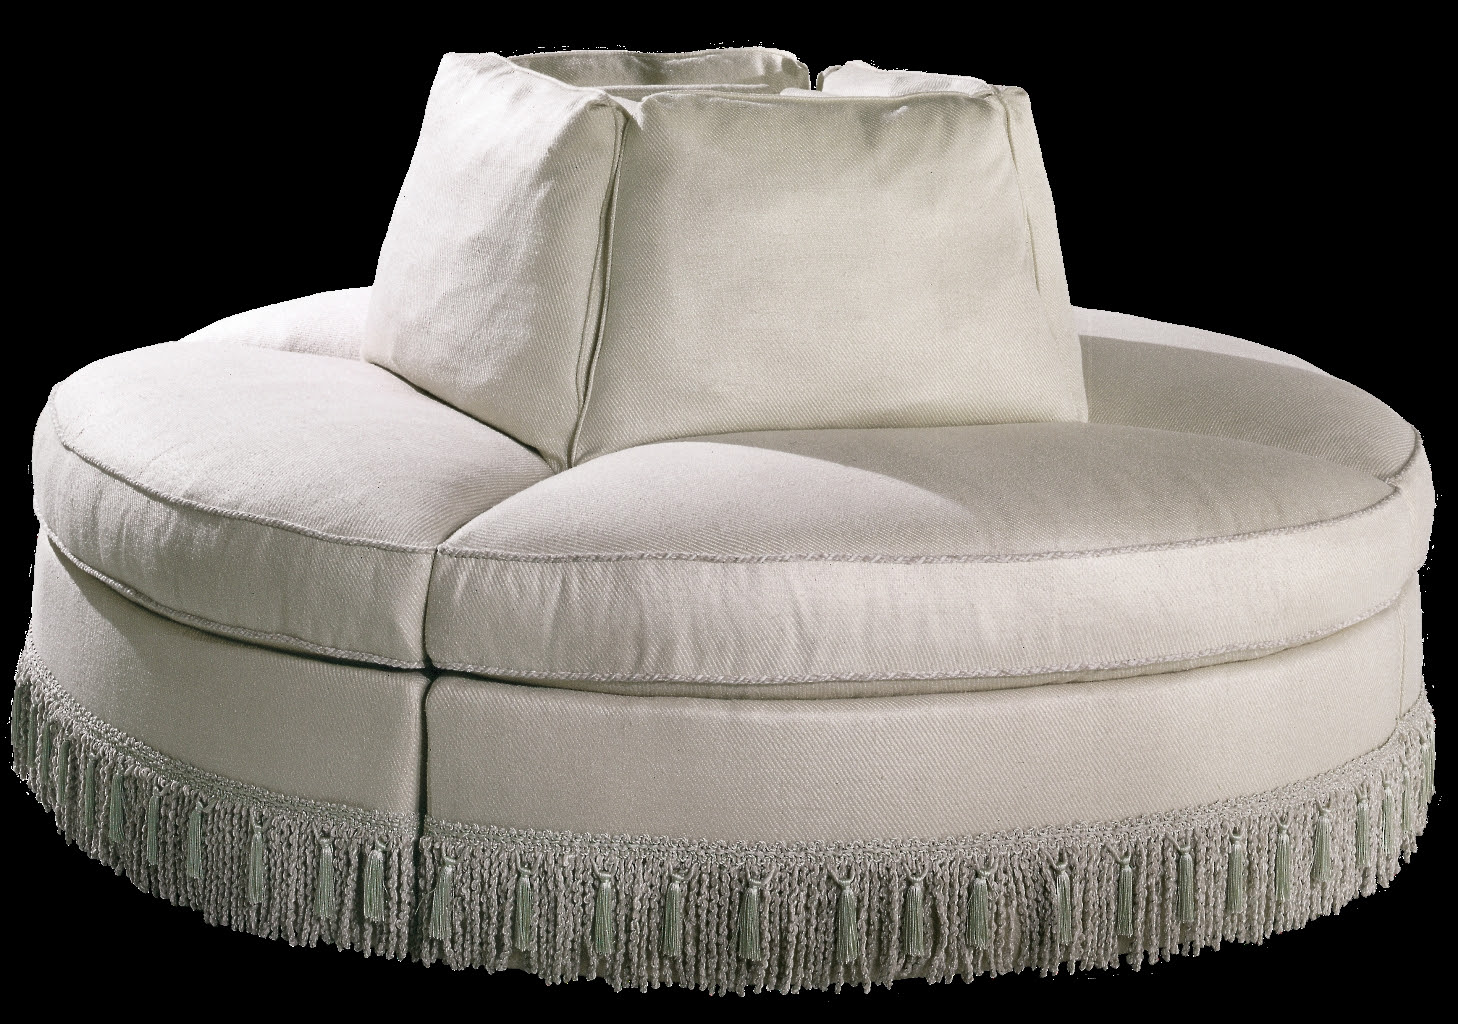 artistic white round settee design with sectional idea with cone backrests design and horse tail decoration on the leg